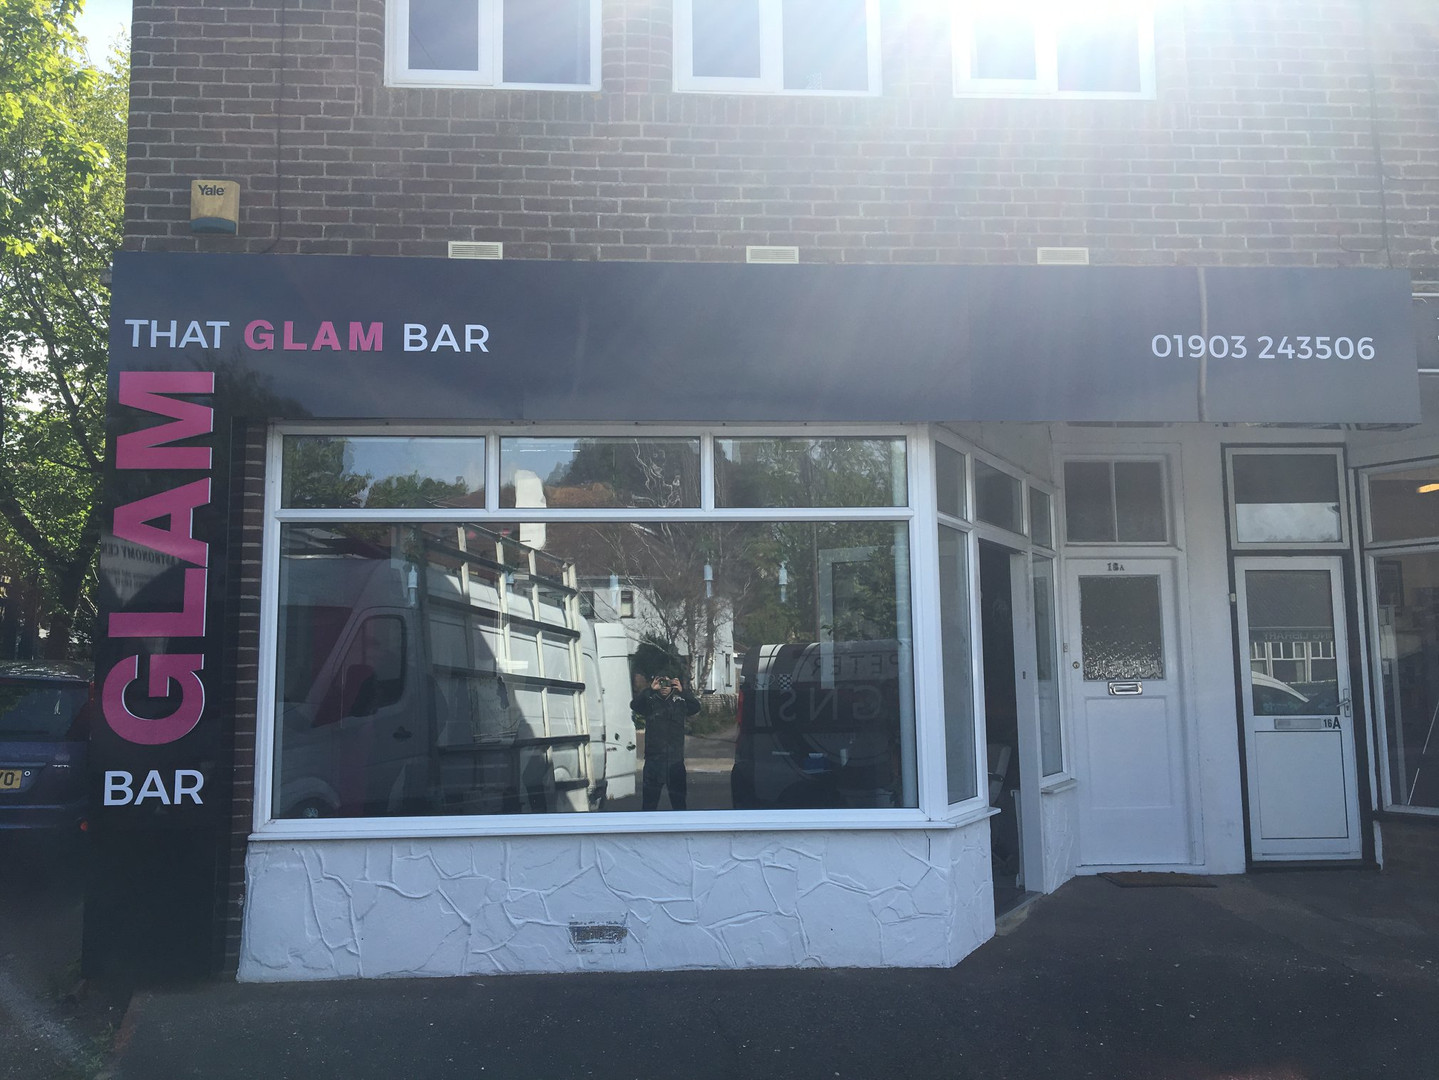 That Glam Bar Fascia